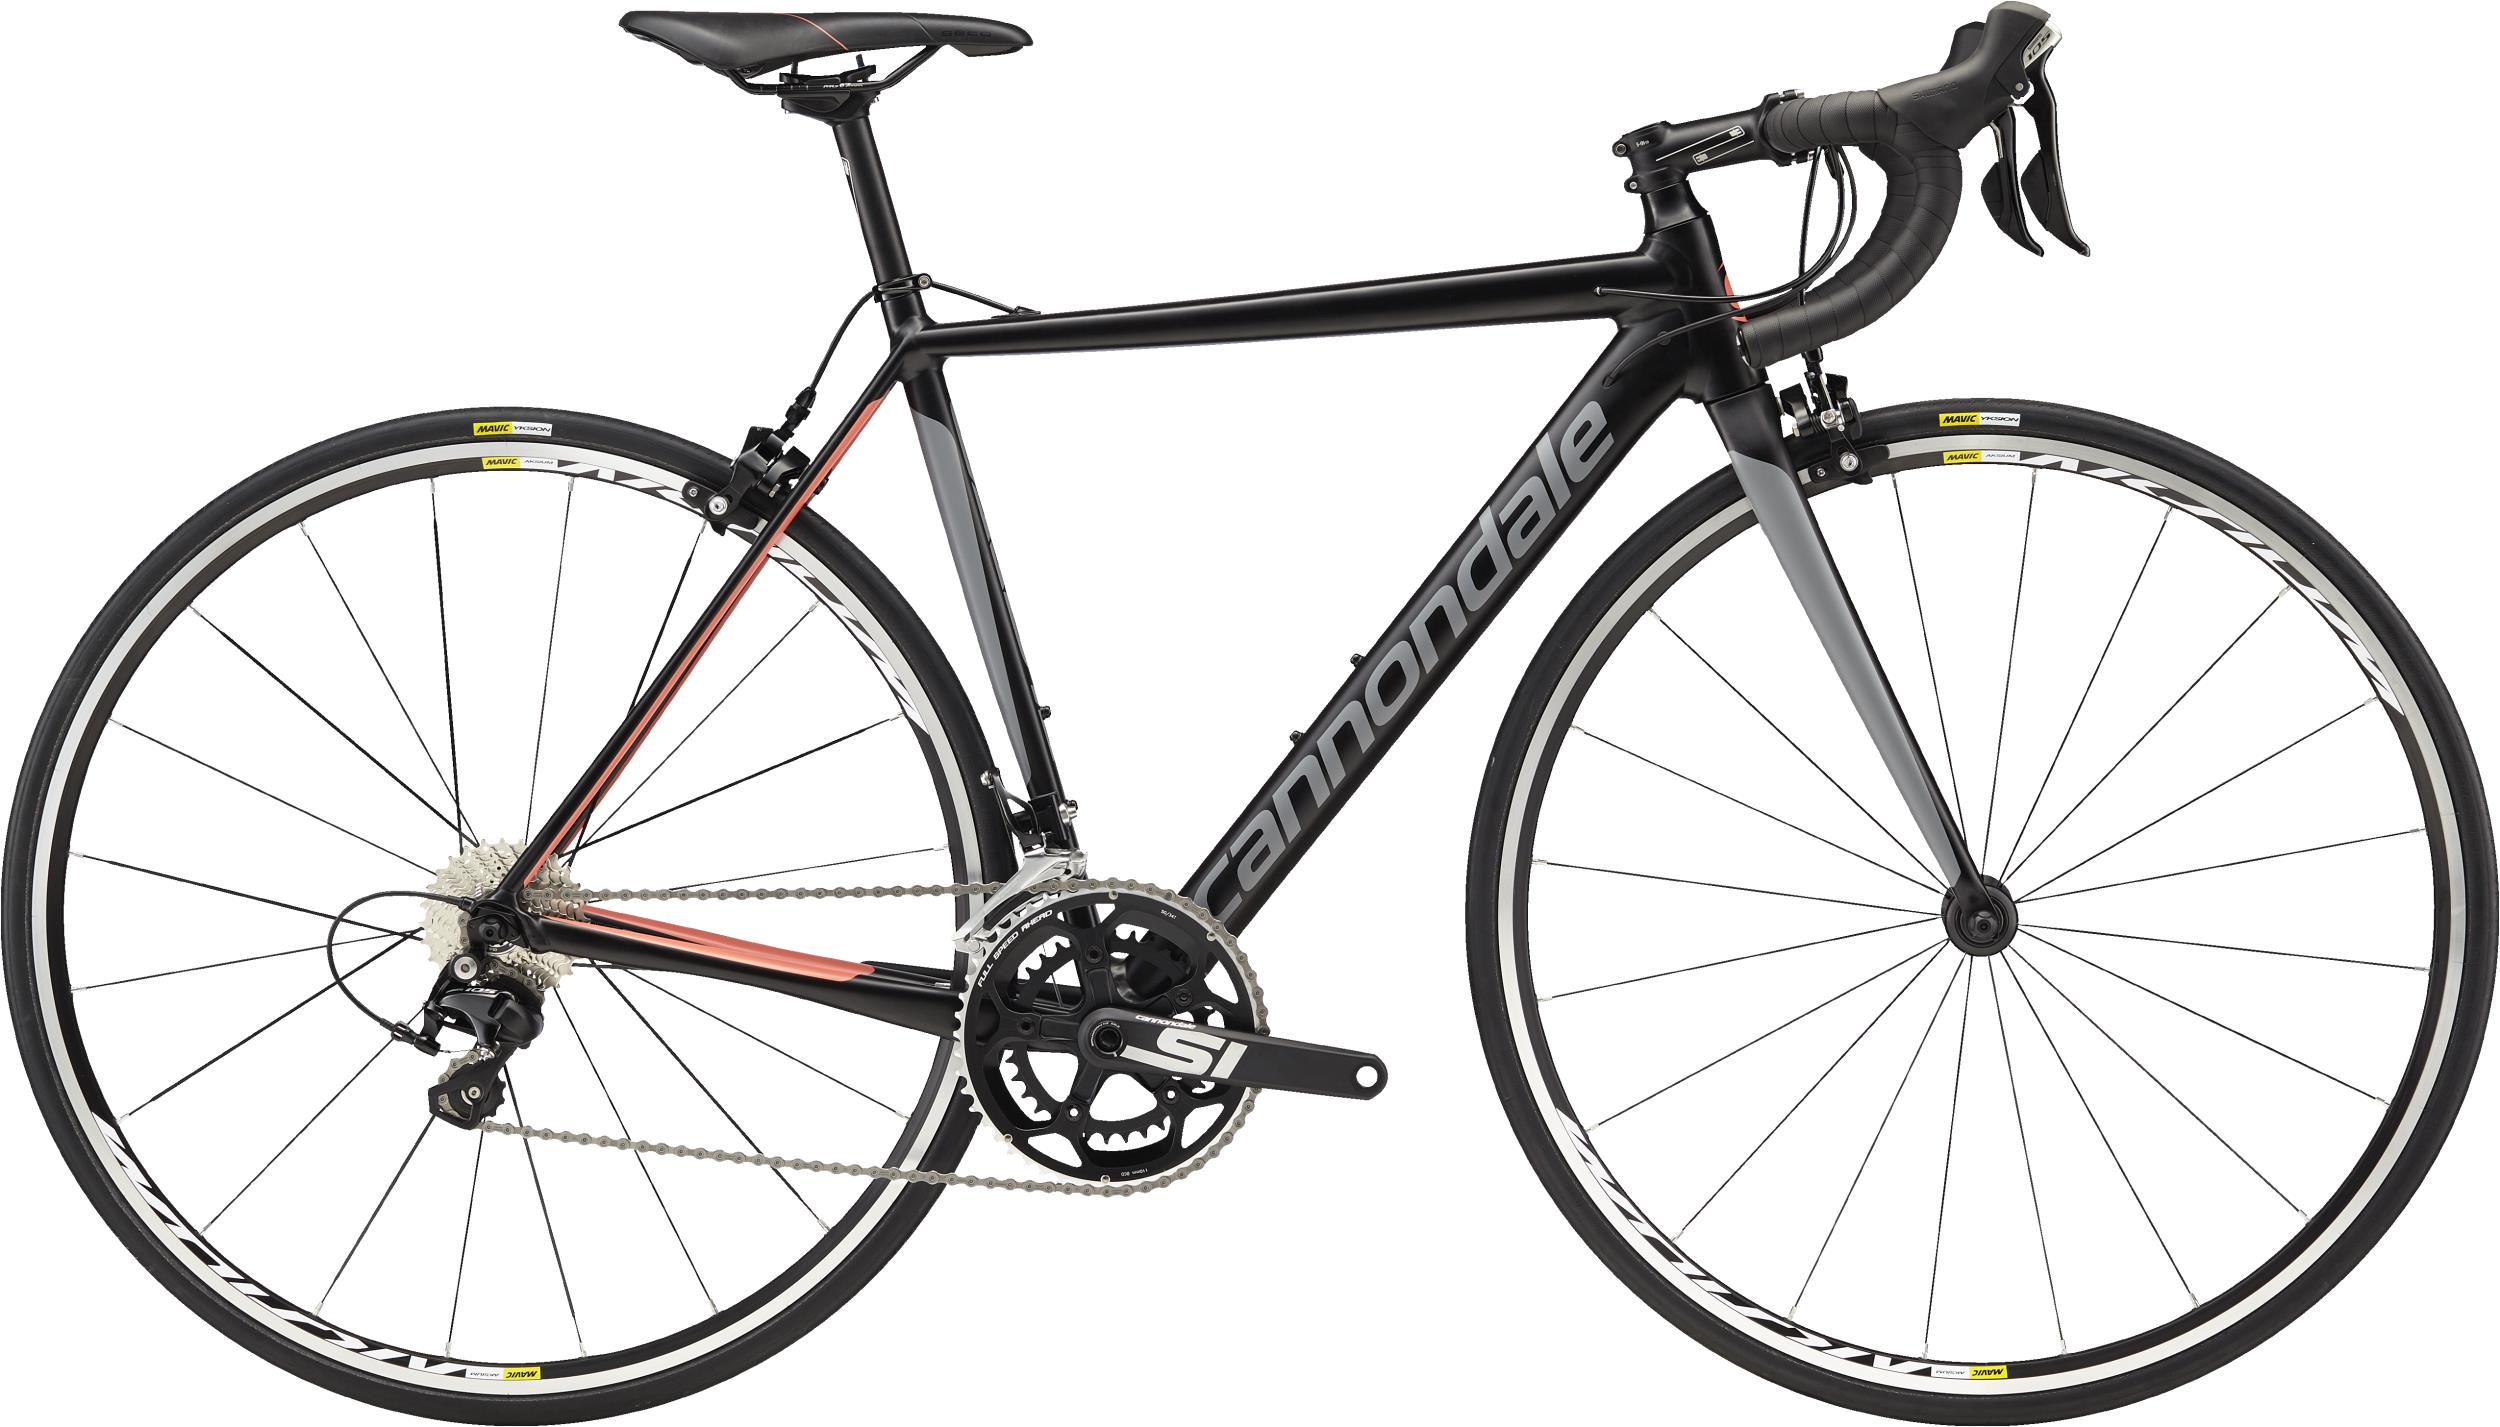 Cannondale CAAD12 Women's 105 BLK Jet Black w/Stealth Gray and Coral - Satin 2018 - 28 -